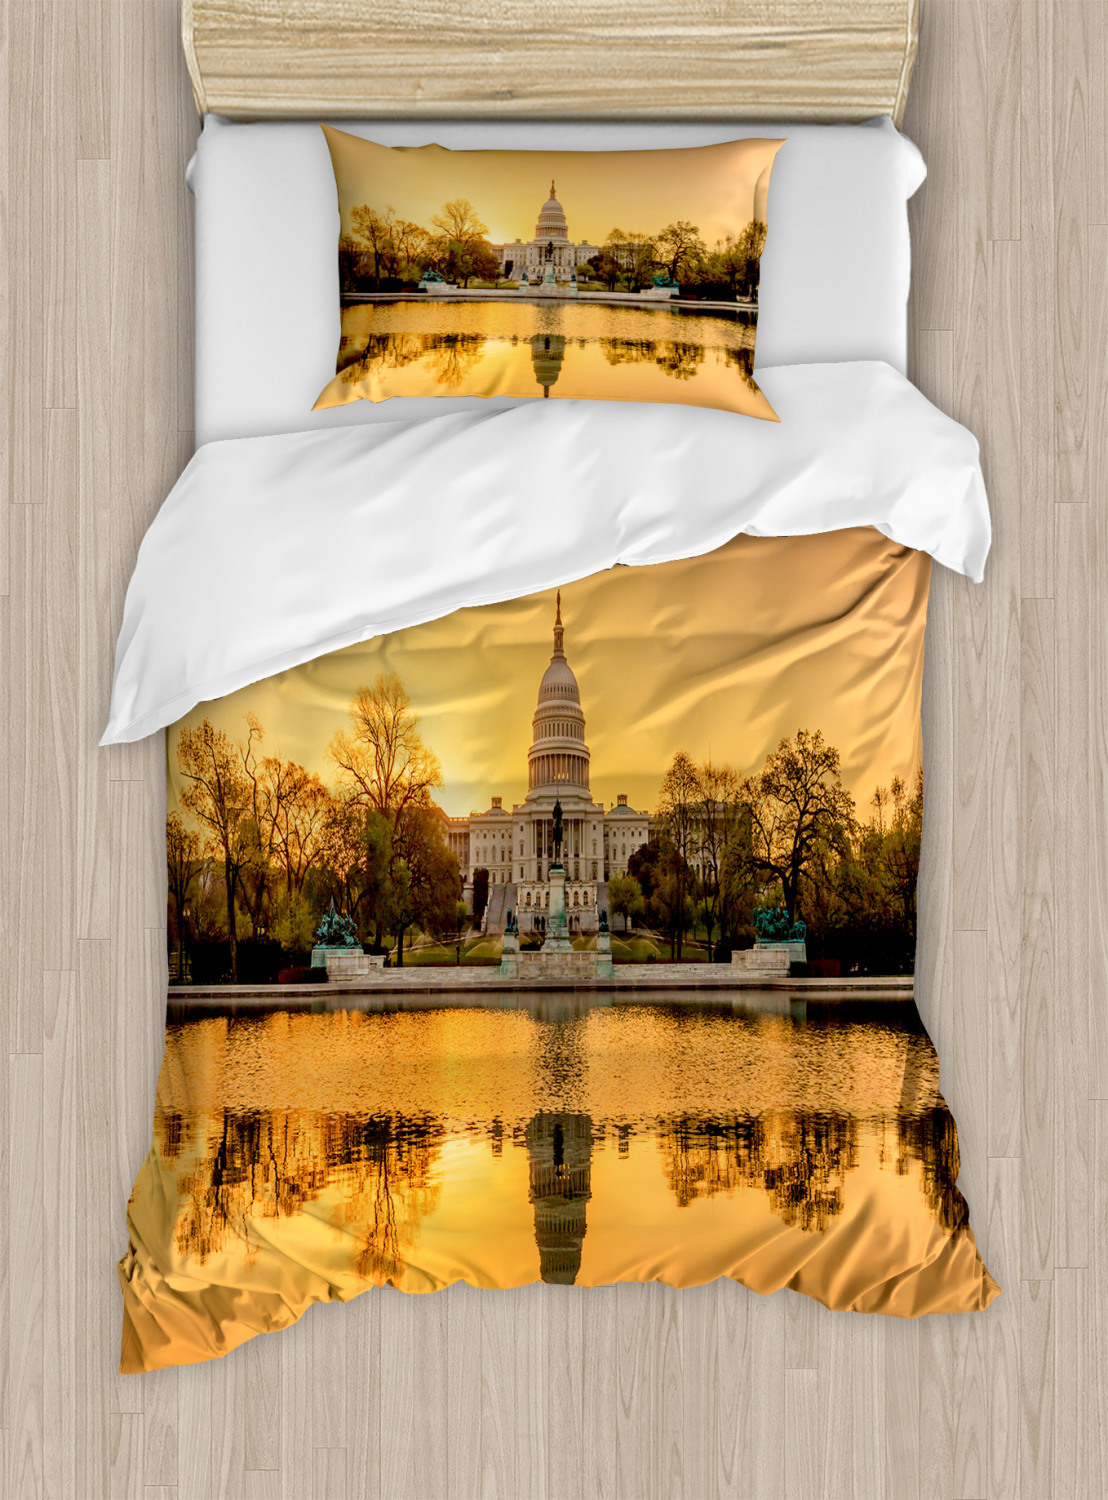 United States Duvet Cover Set with Pillow Shams Washington DC Print